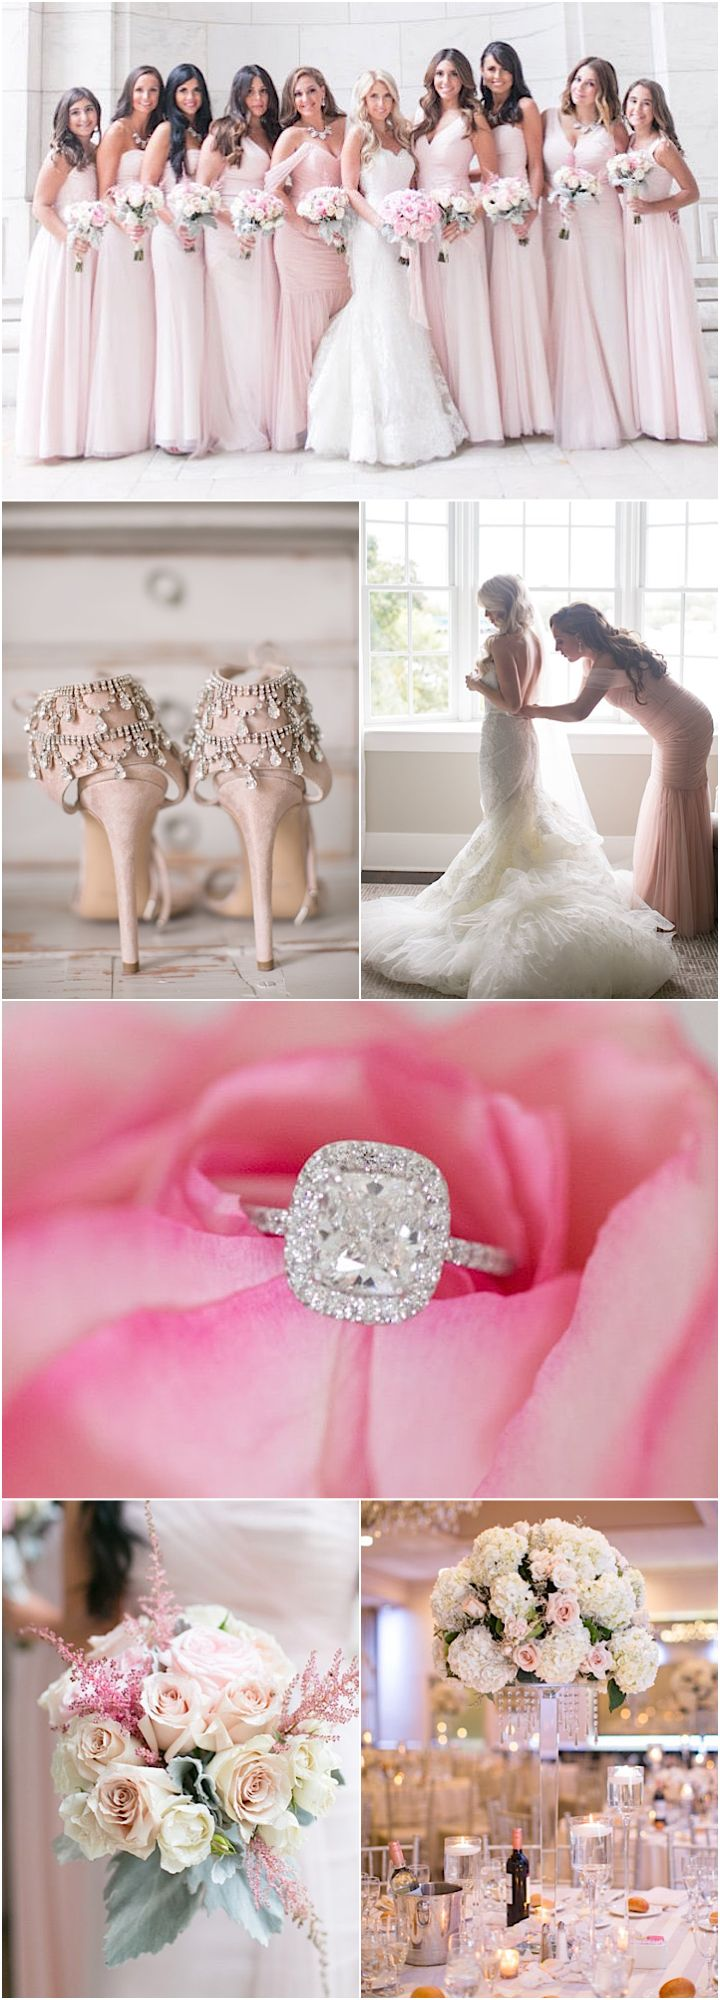 Featured Photographer: Amy Rizzuto; pink wedding ideas